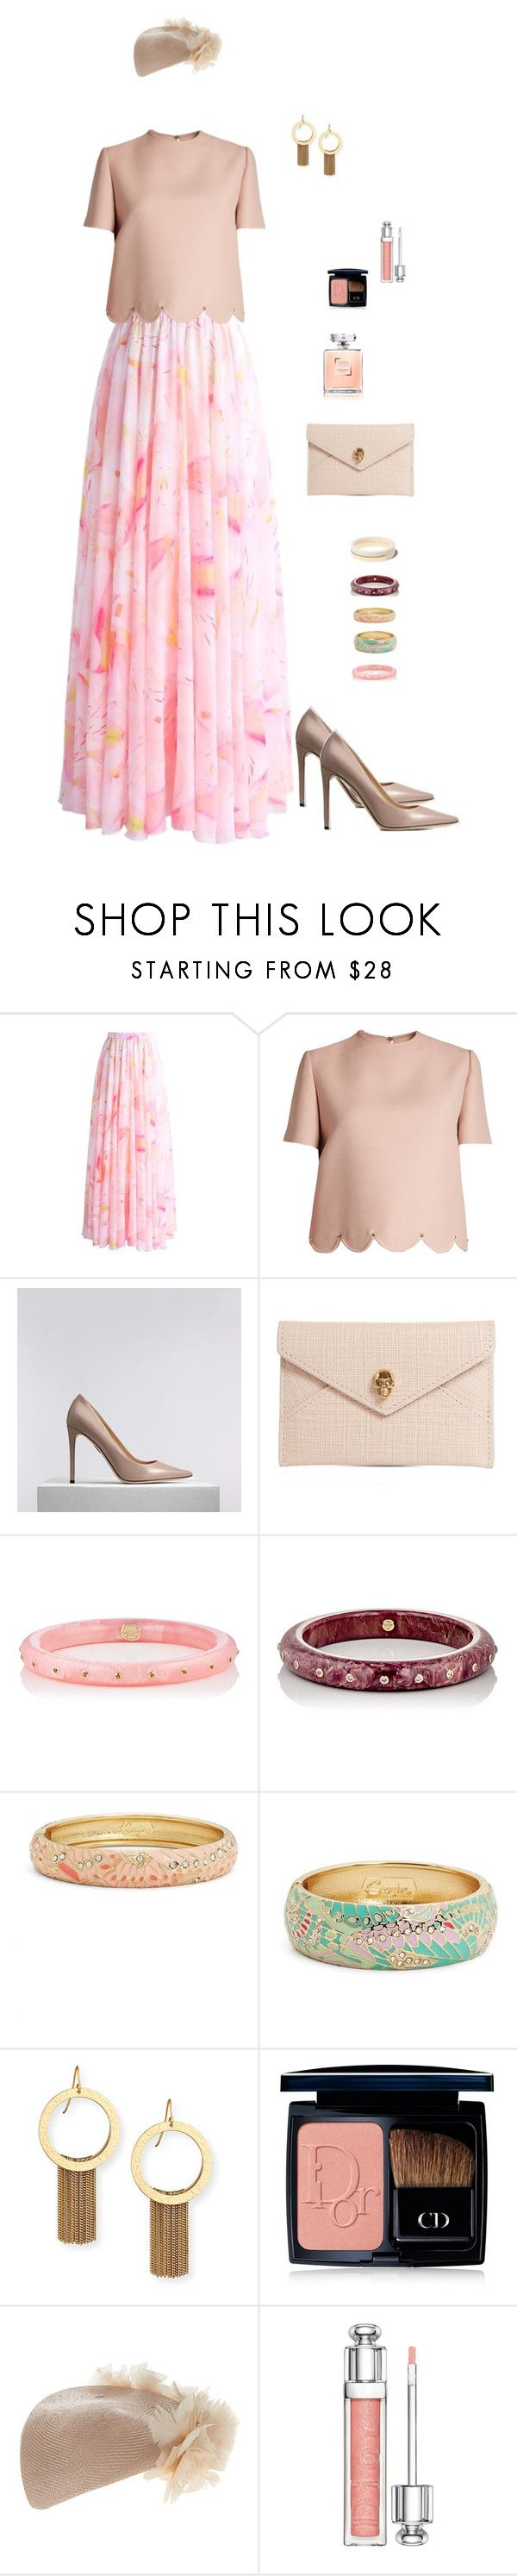 """Perfect Tatiana."" by srtagraham ❤ liked on Polyvore featuring Chicwish, Valentino, Alexander McQueen, Mark Davis, Sequin, Stephanie Kantis, Christian Dior, Rosie Olivia, men's fashion and menswear"